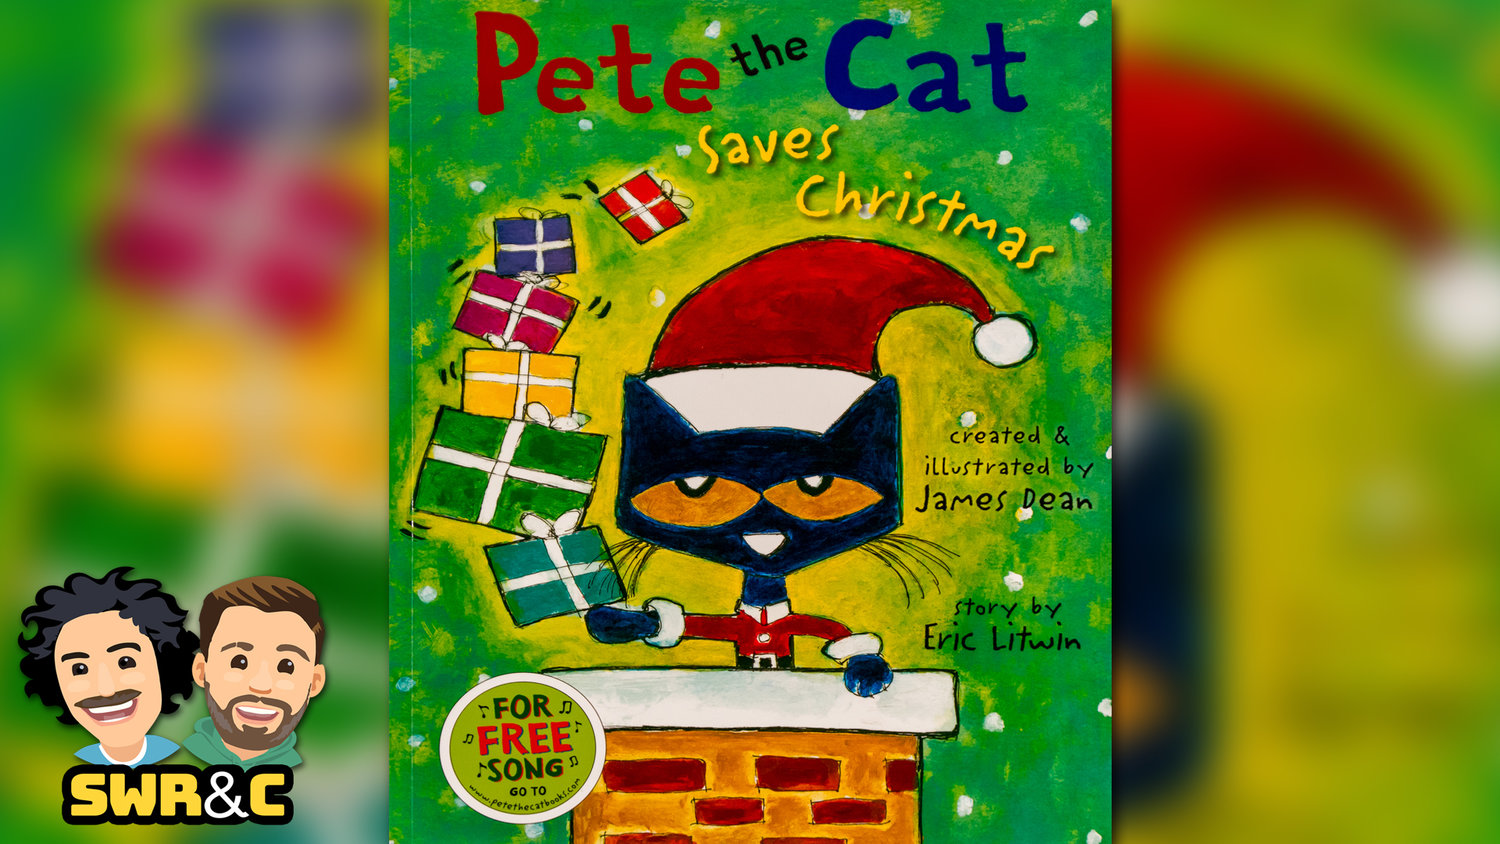 Pete The Cat Saves Christmas.Pete The Cat Saves Christmas By James Dean Eric Litwin